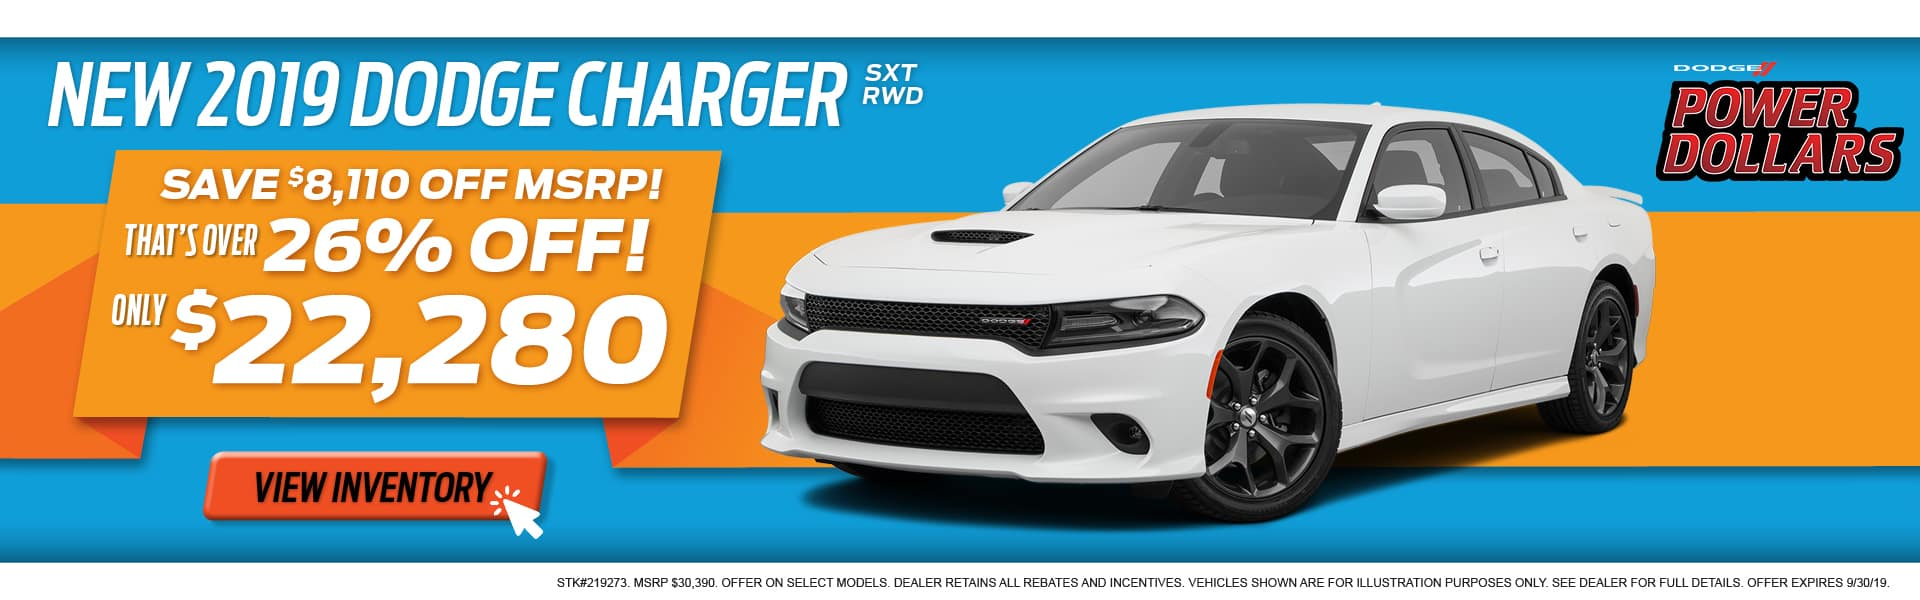 2019 Dodge Charger Special at Thomson Dodge in Thomson, GA